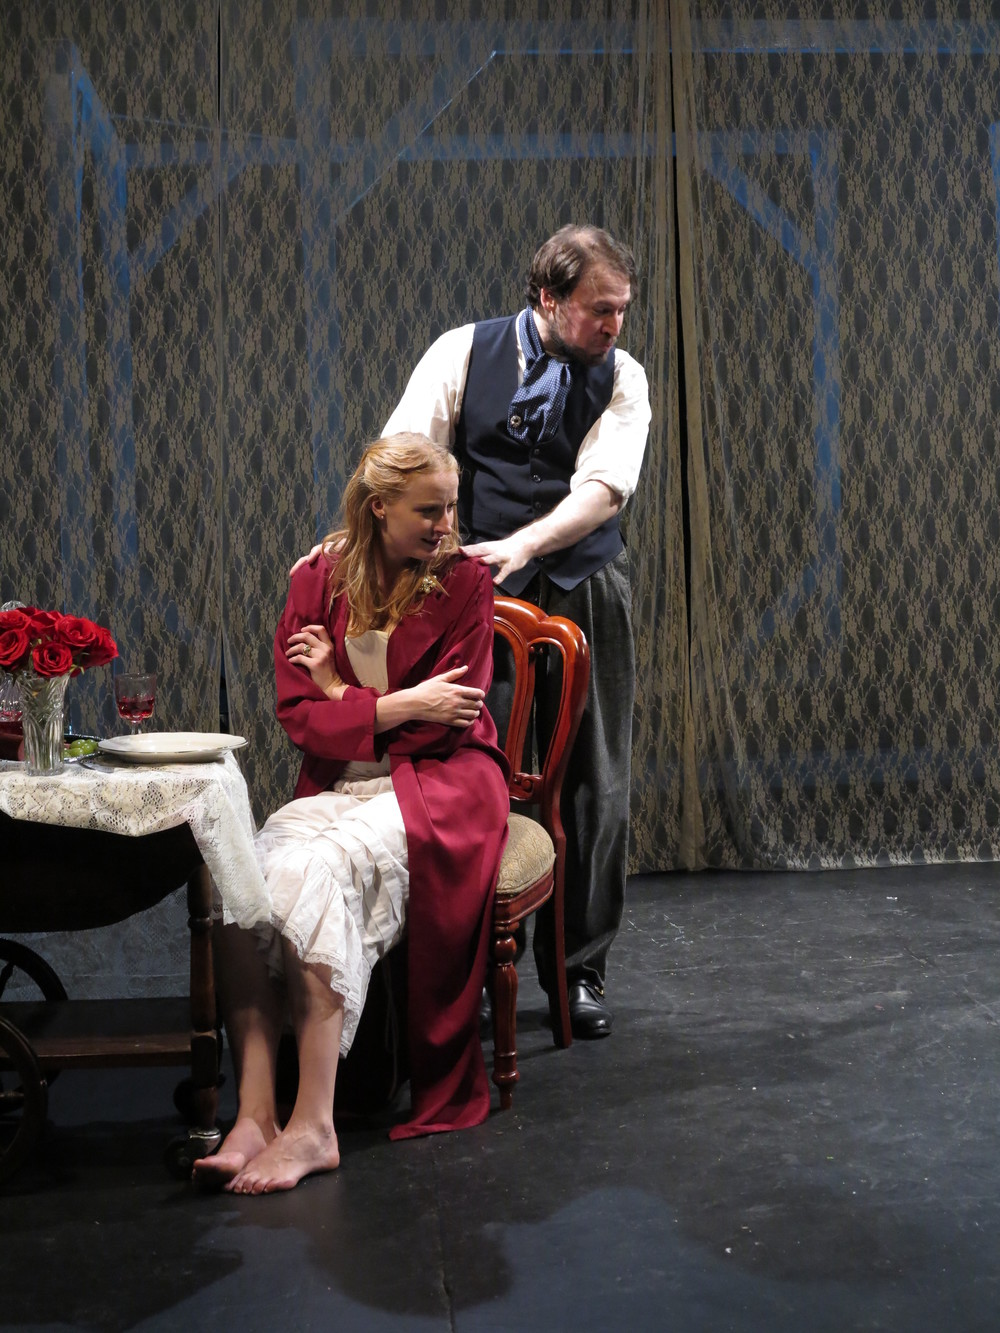 Kersti Bryan and Eric Percival in Mr. Bengt's Wife